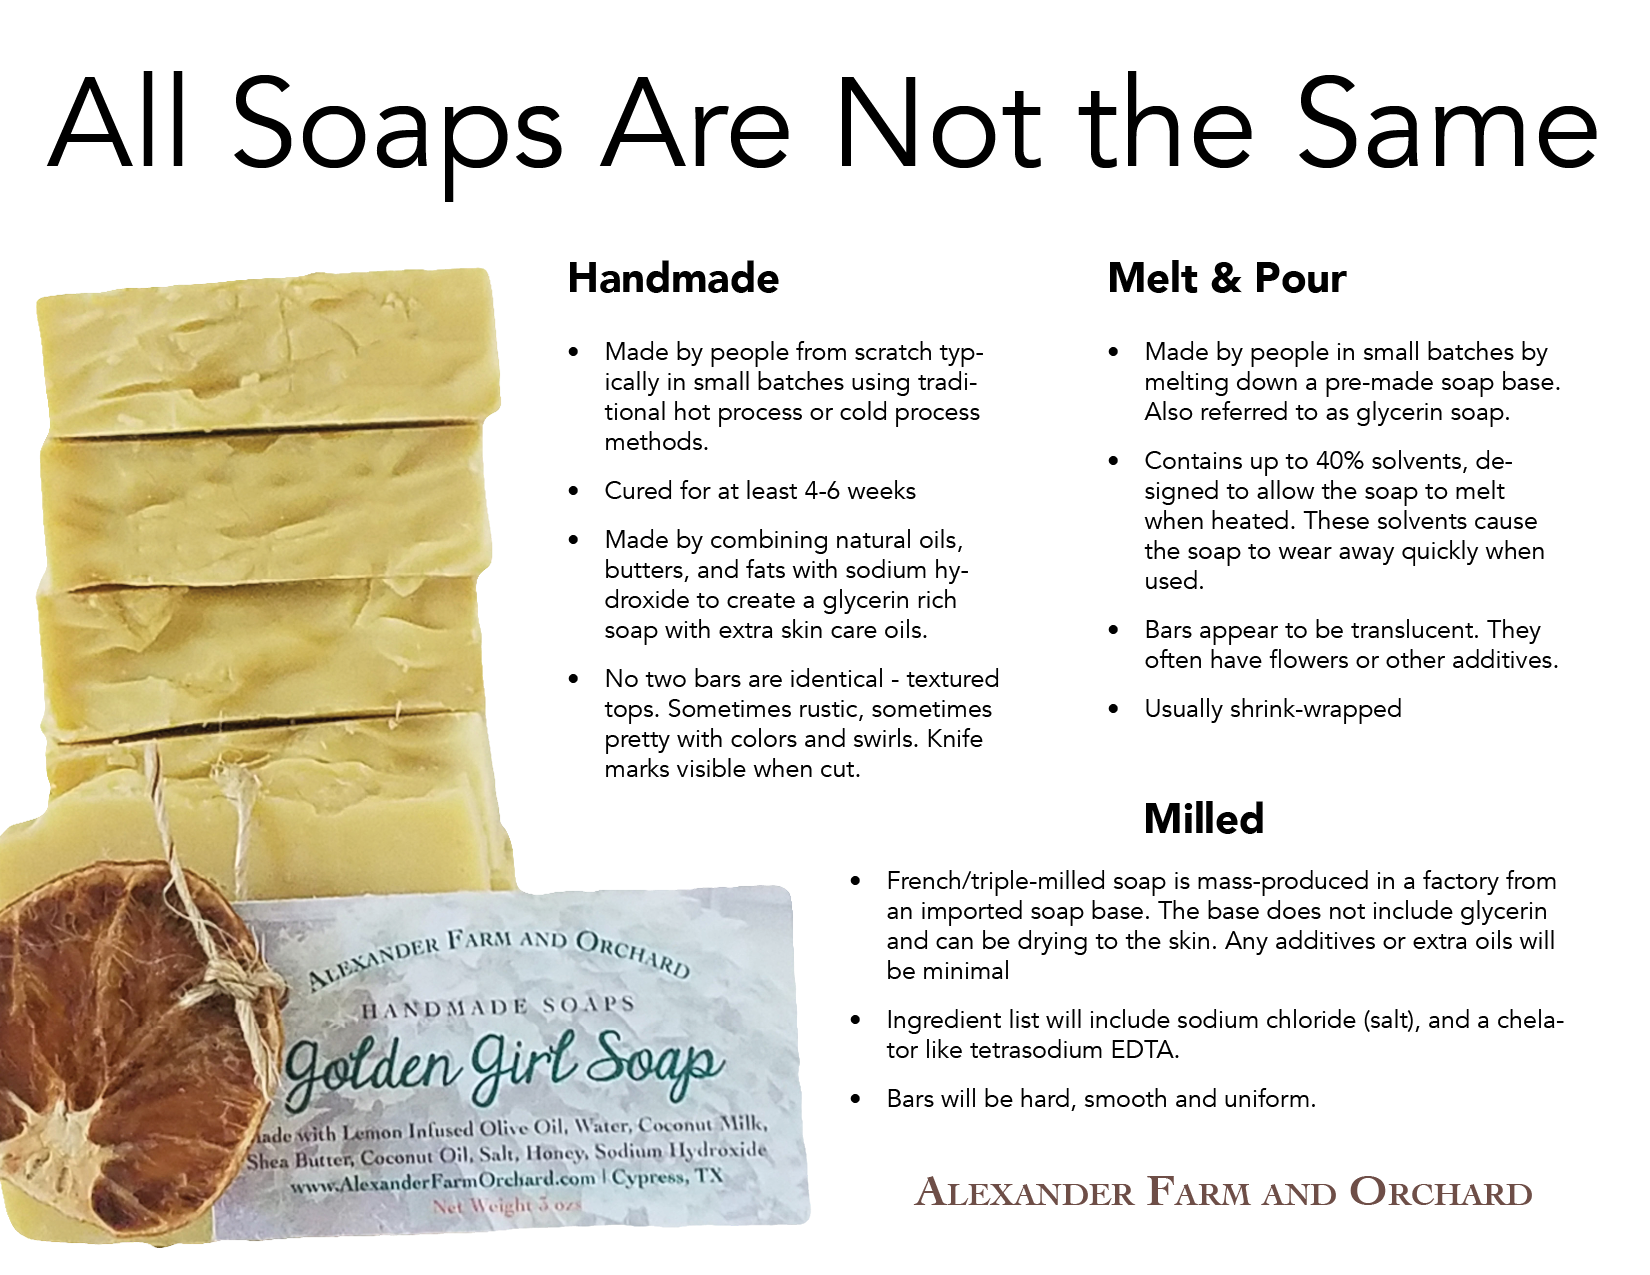 All soaps are not the same